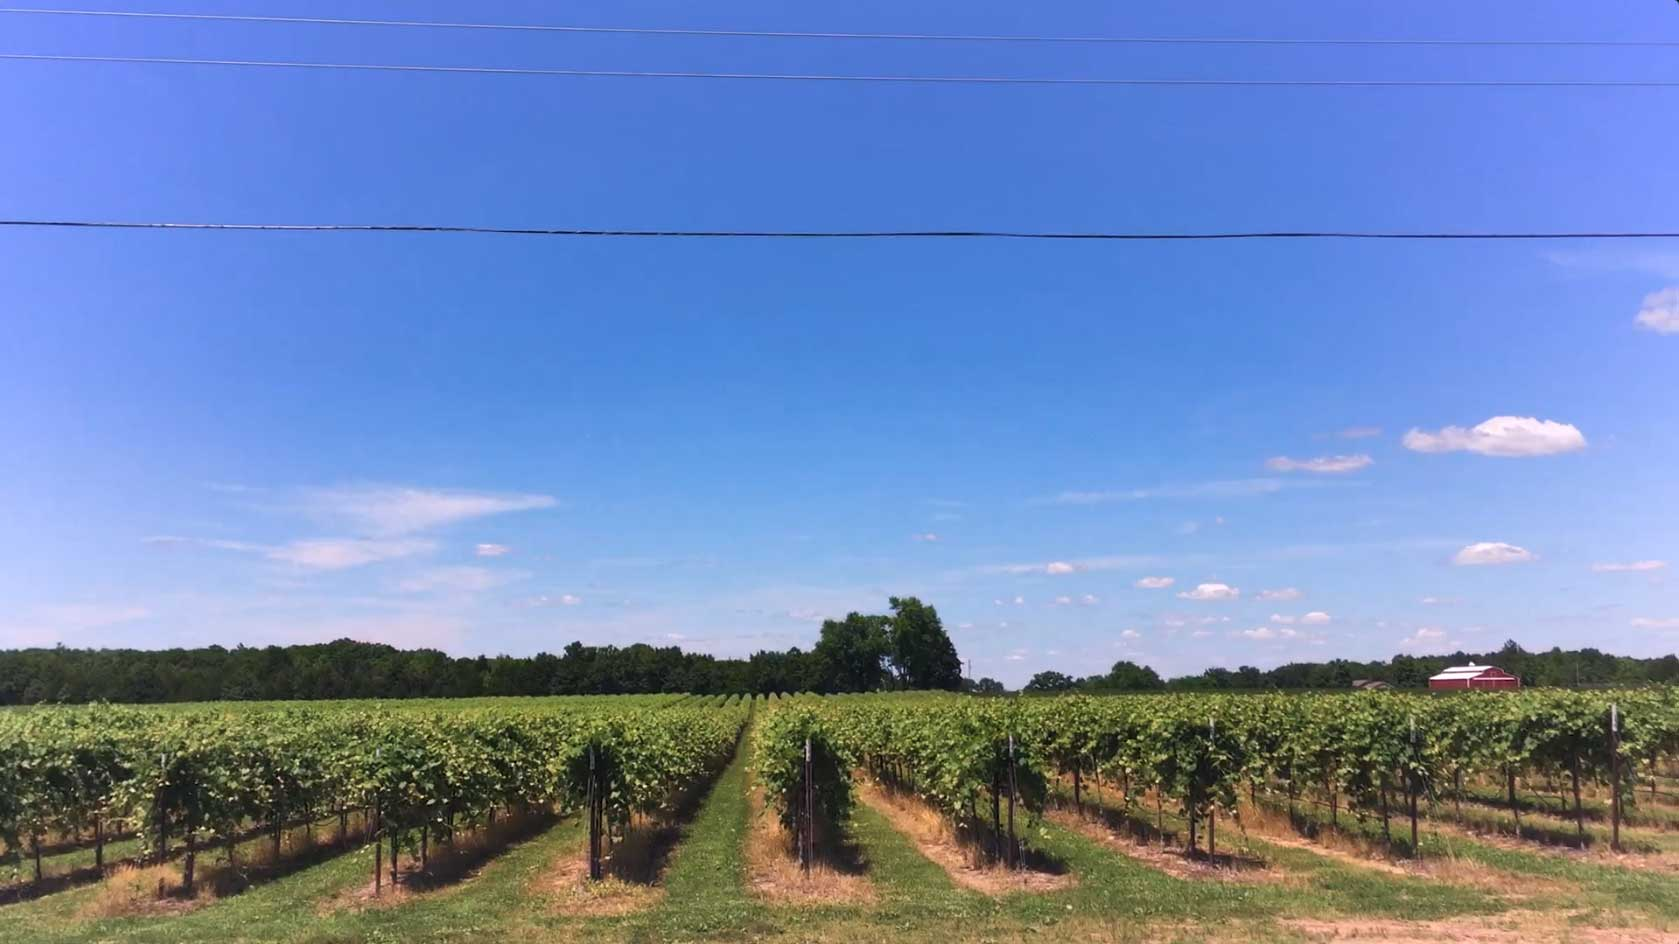 Winery vineyard photo under a blue sky - St. James Winery Missouri